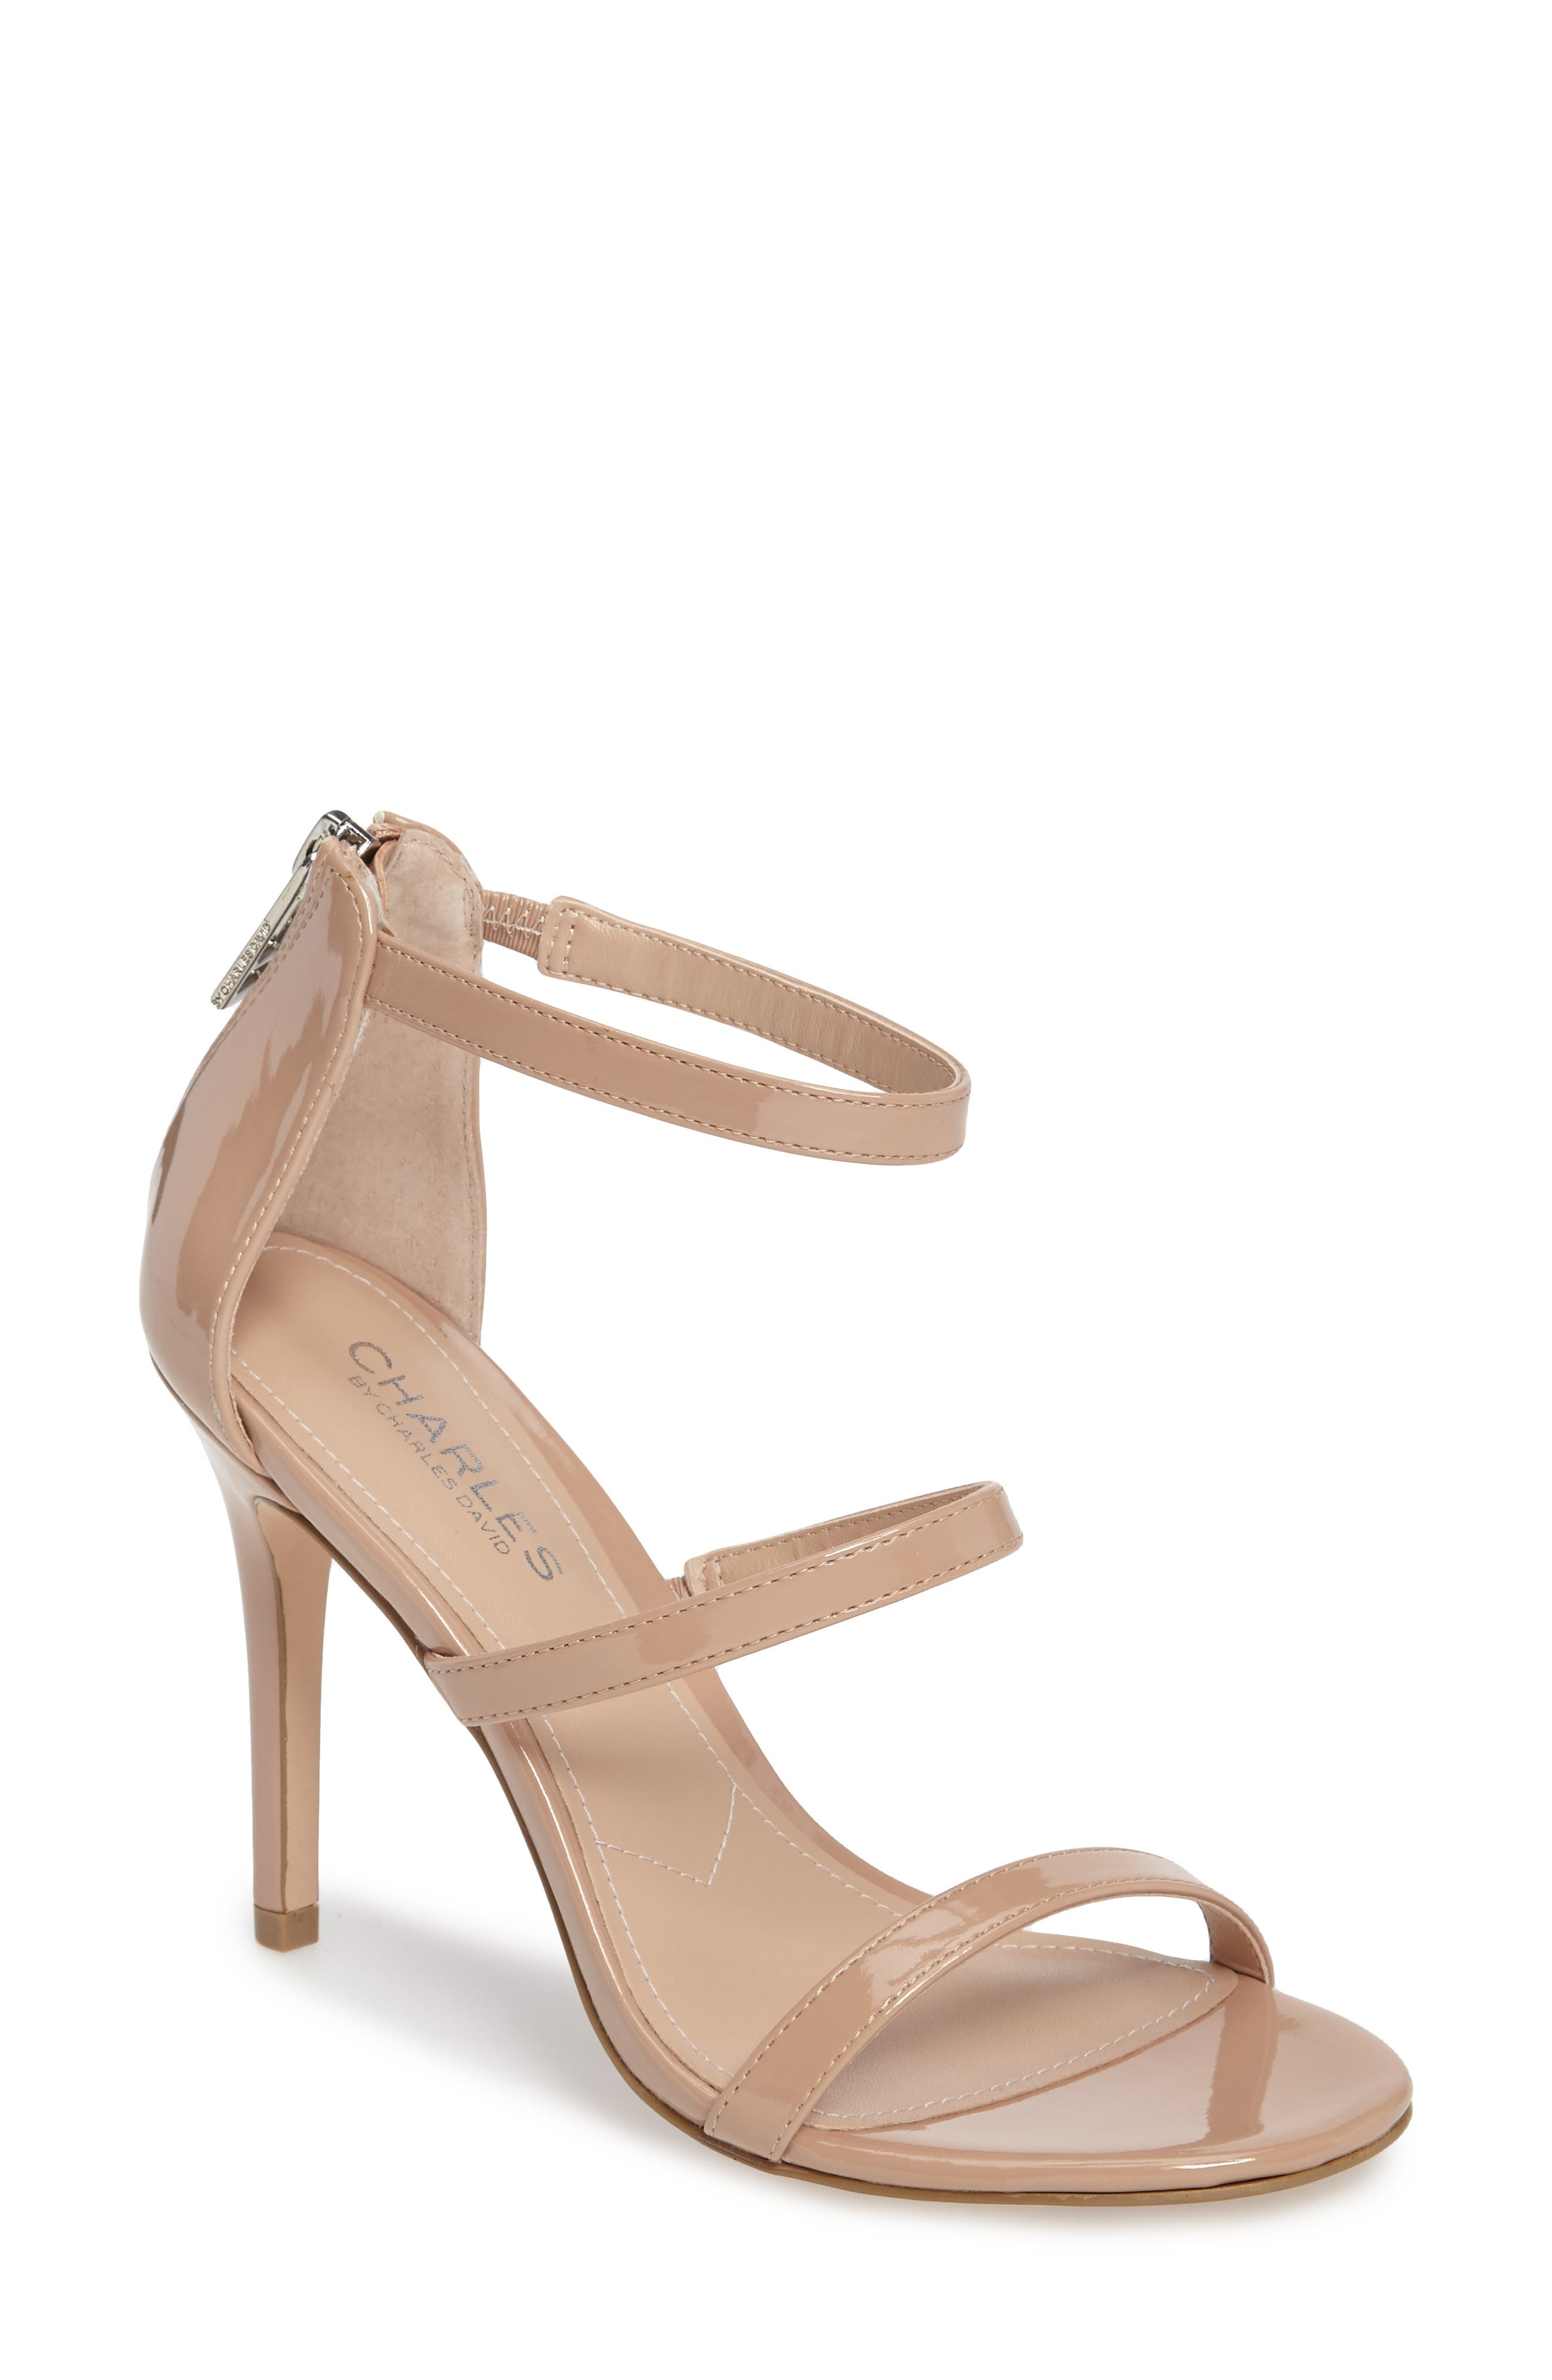 Ria Strappy Sandal,                         Main,                         color, Nude Patent Leather